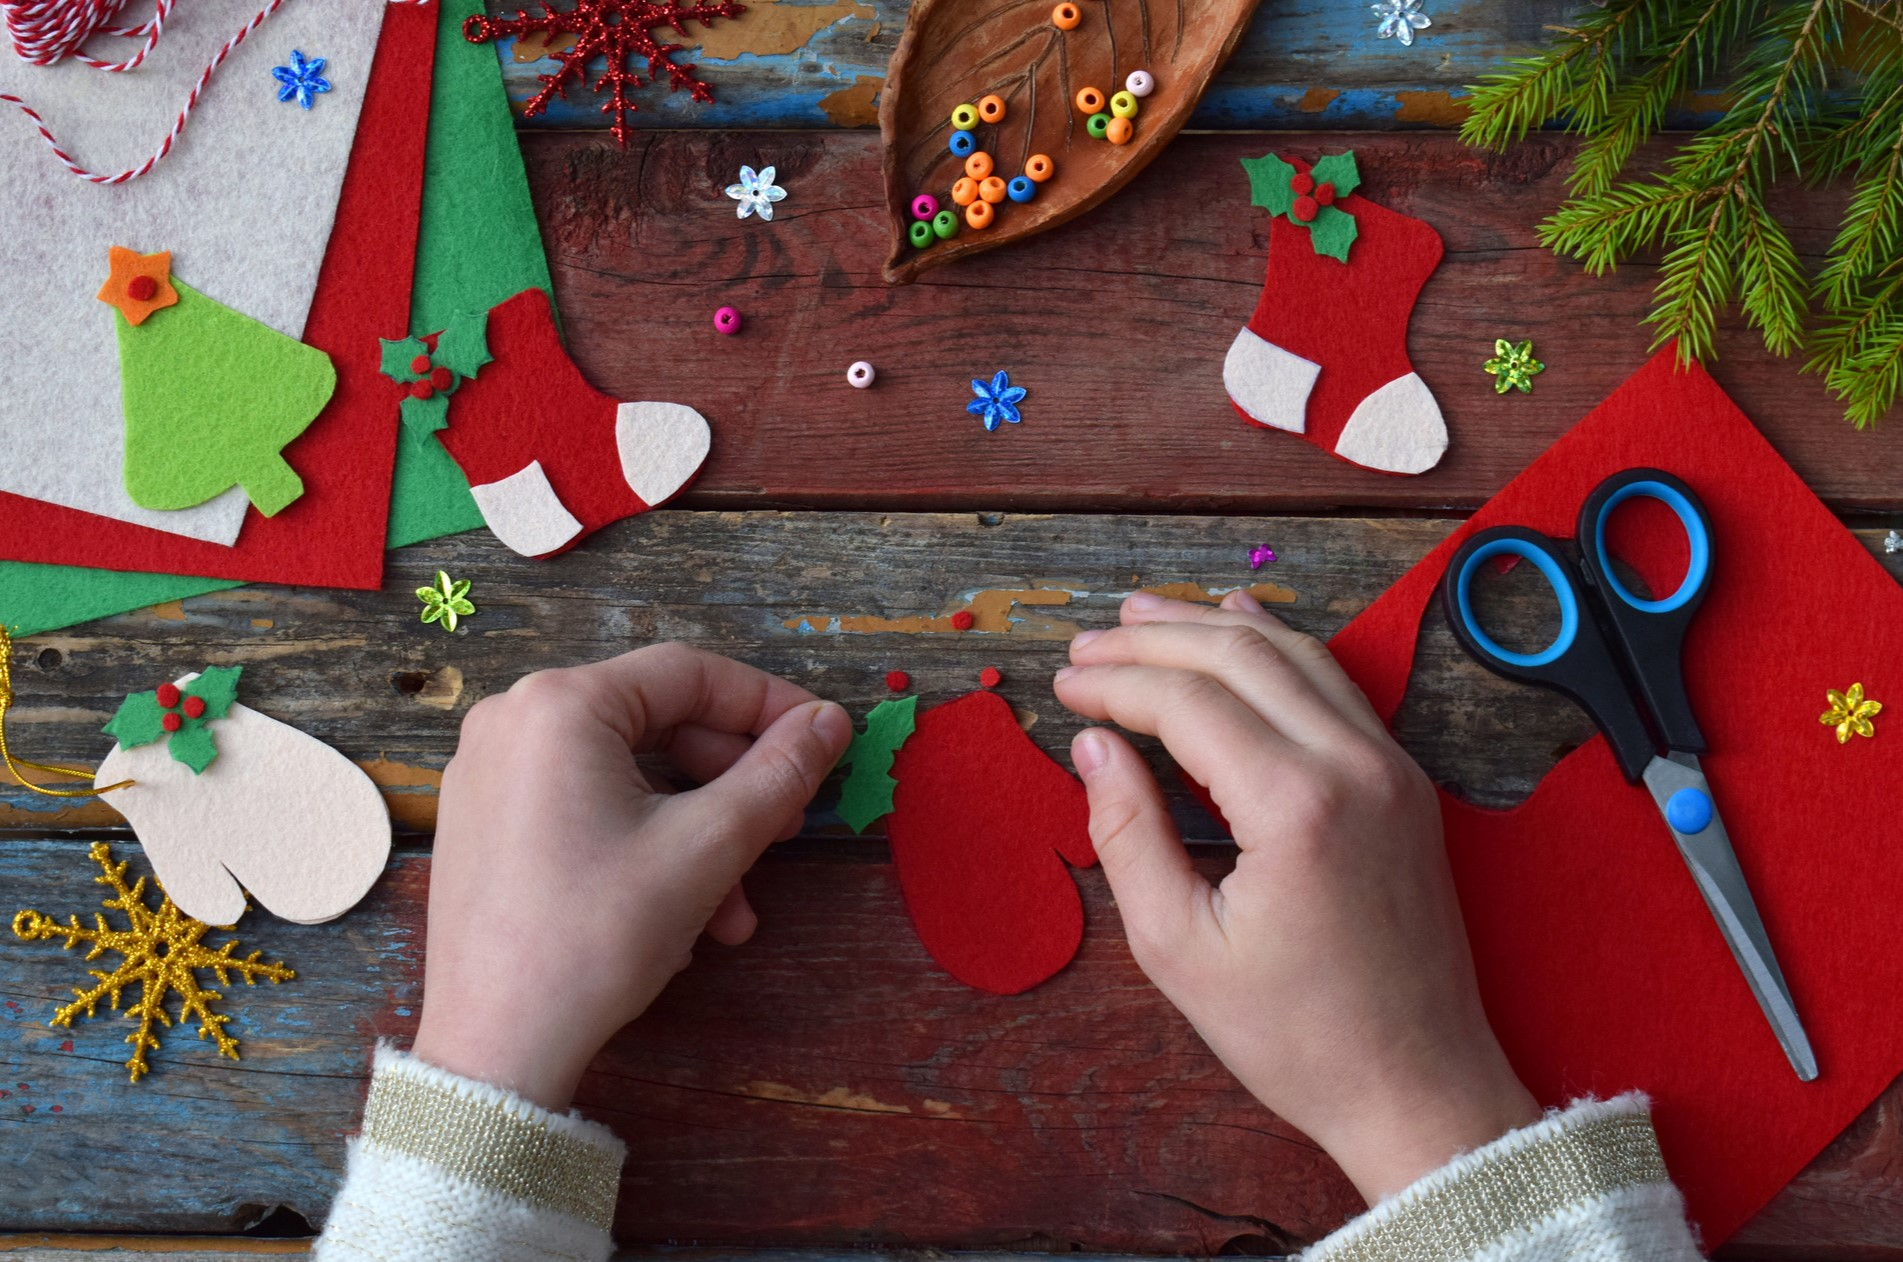 Maker Workshop: Artsy Ornaments